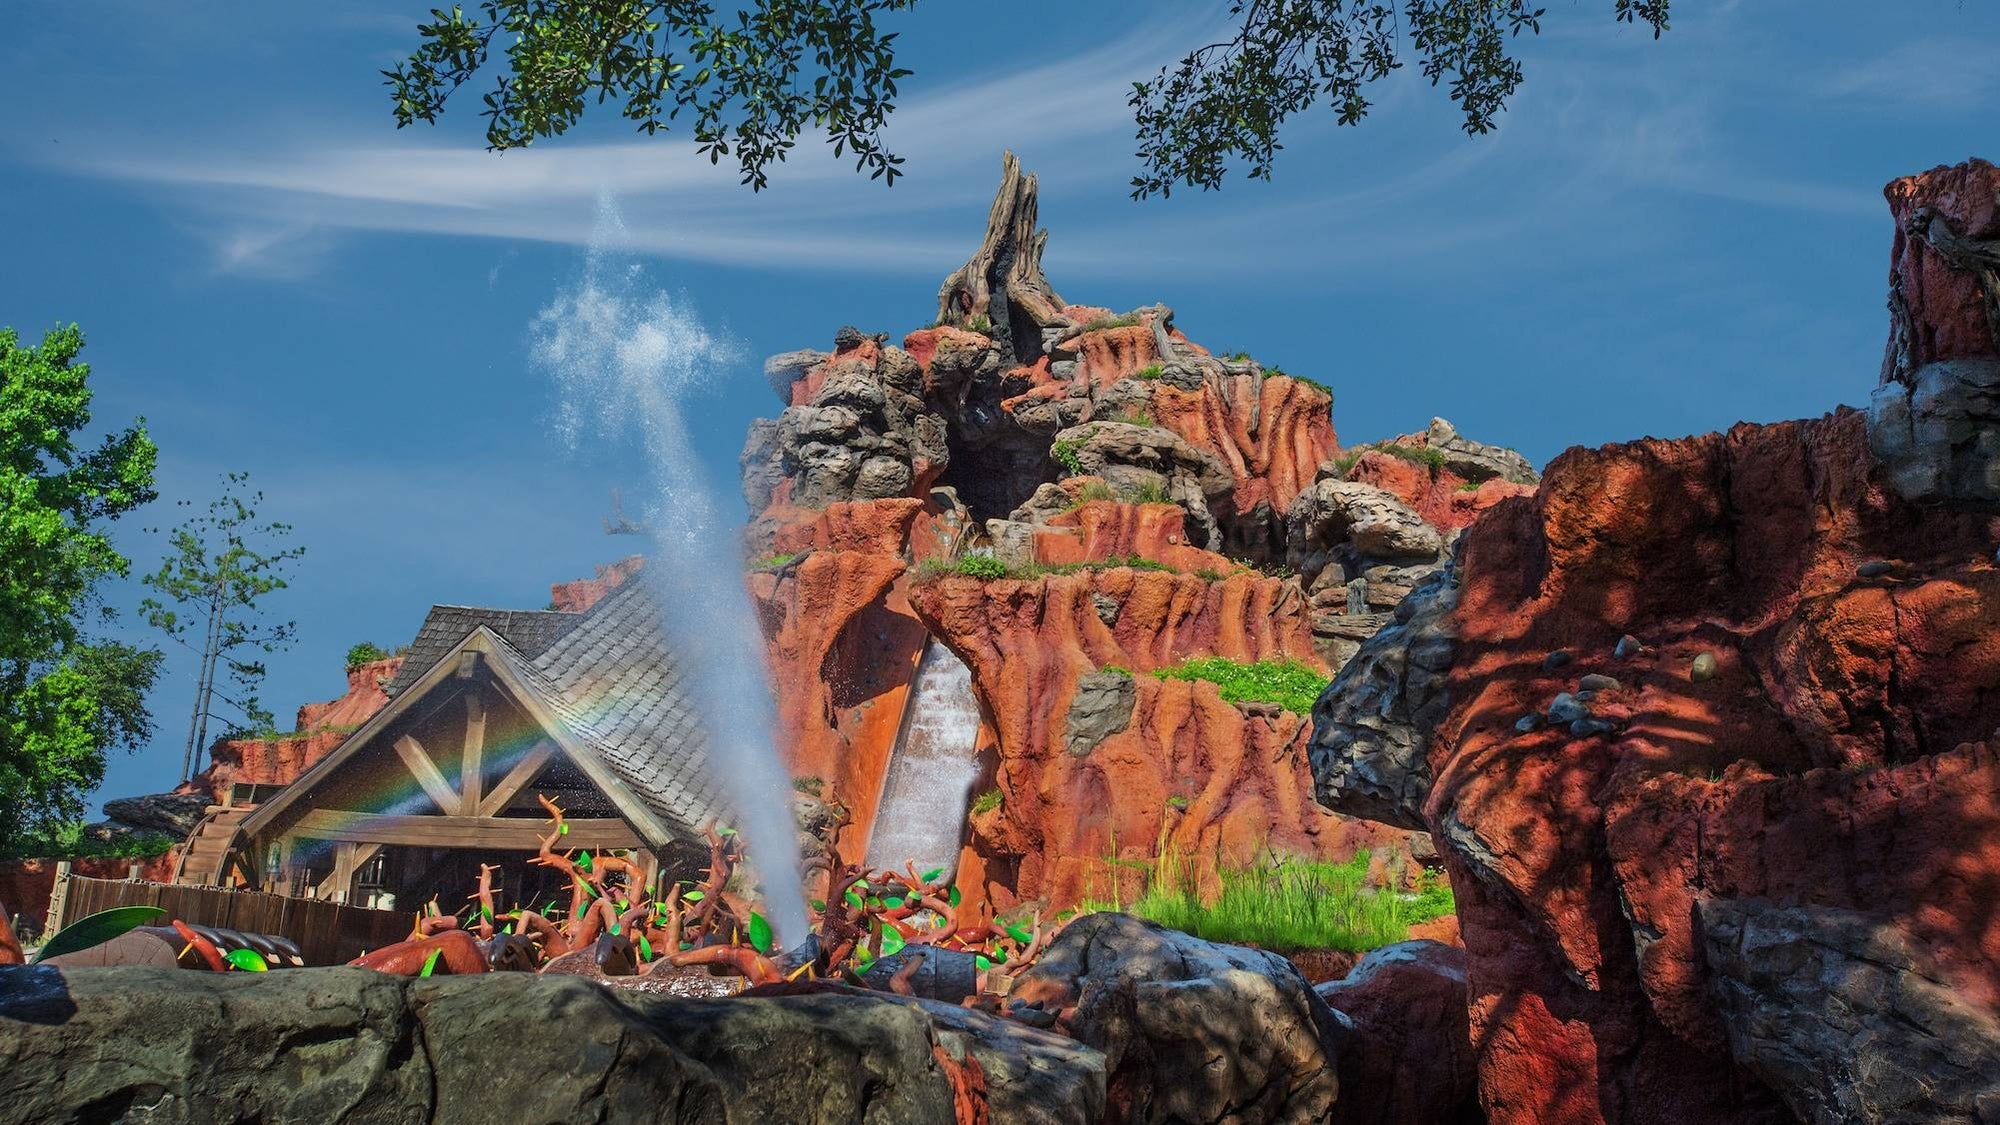 Splash Mountain Ride Vehicle Sinks at Magic Kingdom With Guests Aboard